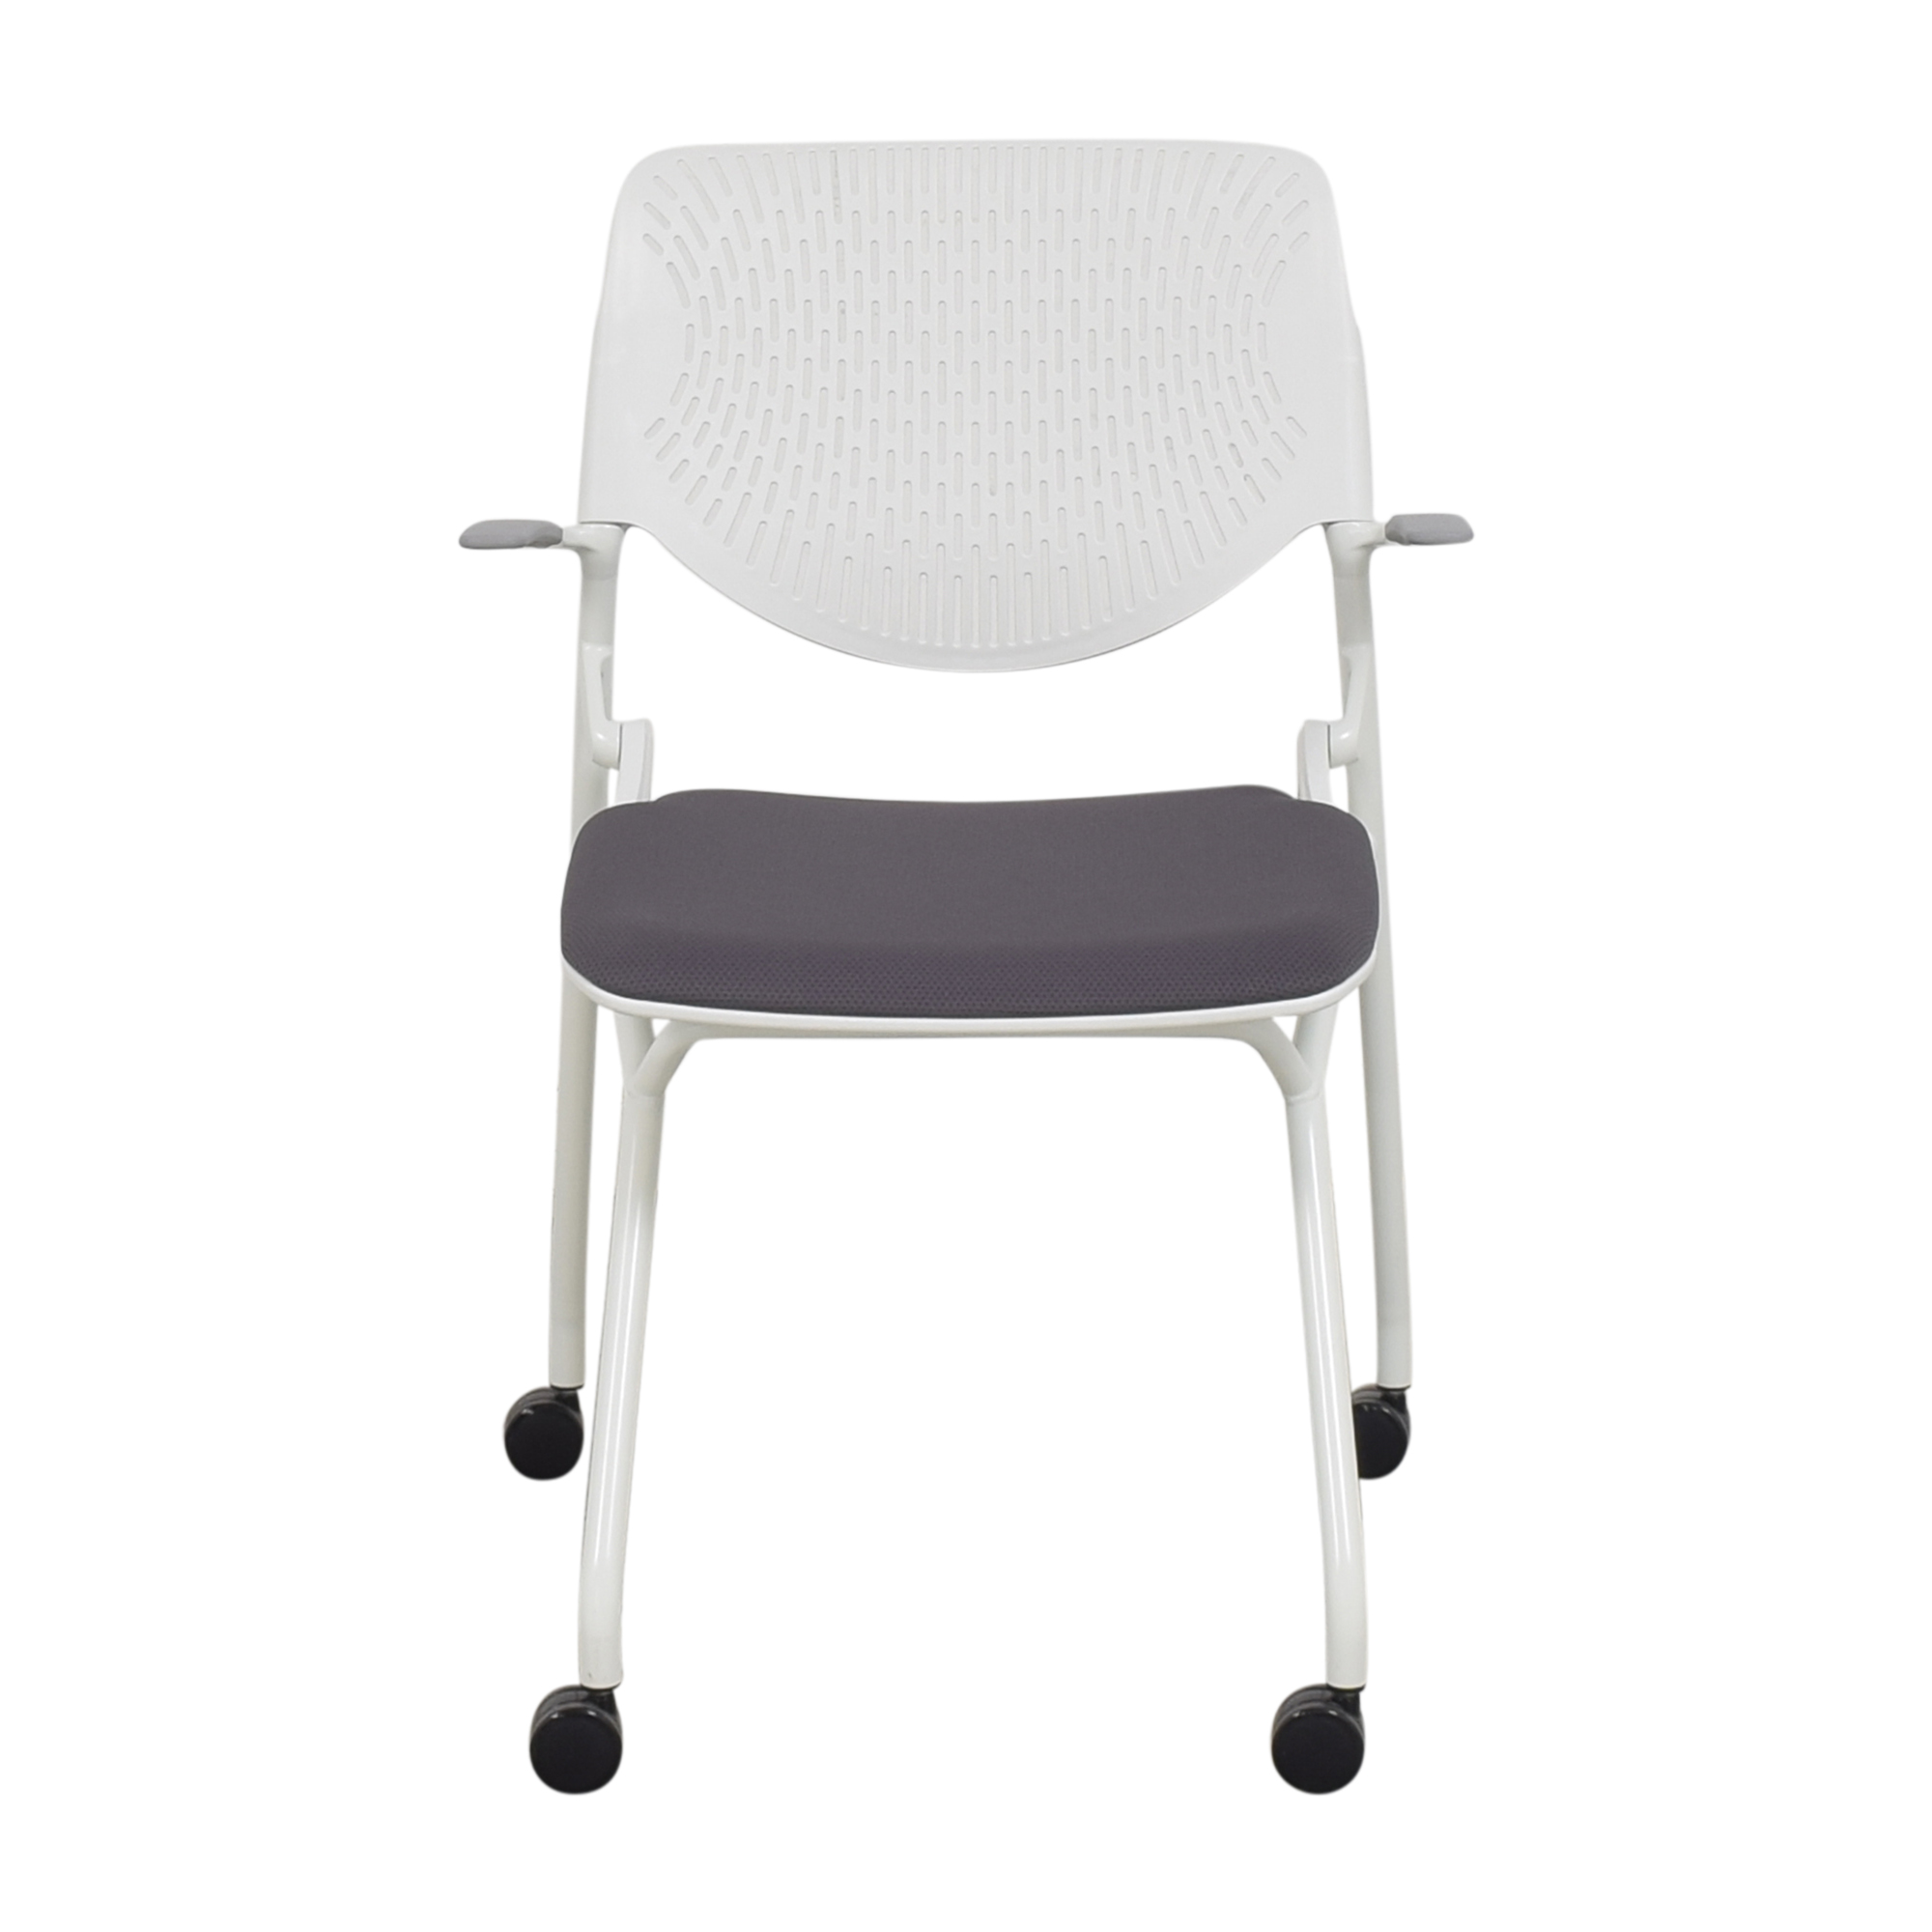 Room & Board Runa Nesting Chair by Okamura Room & Board